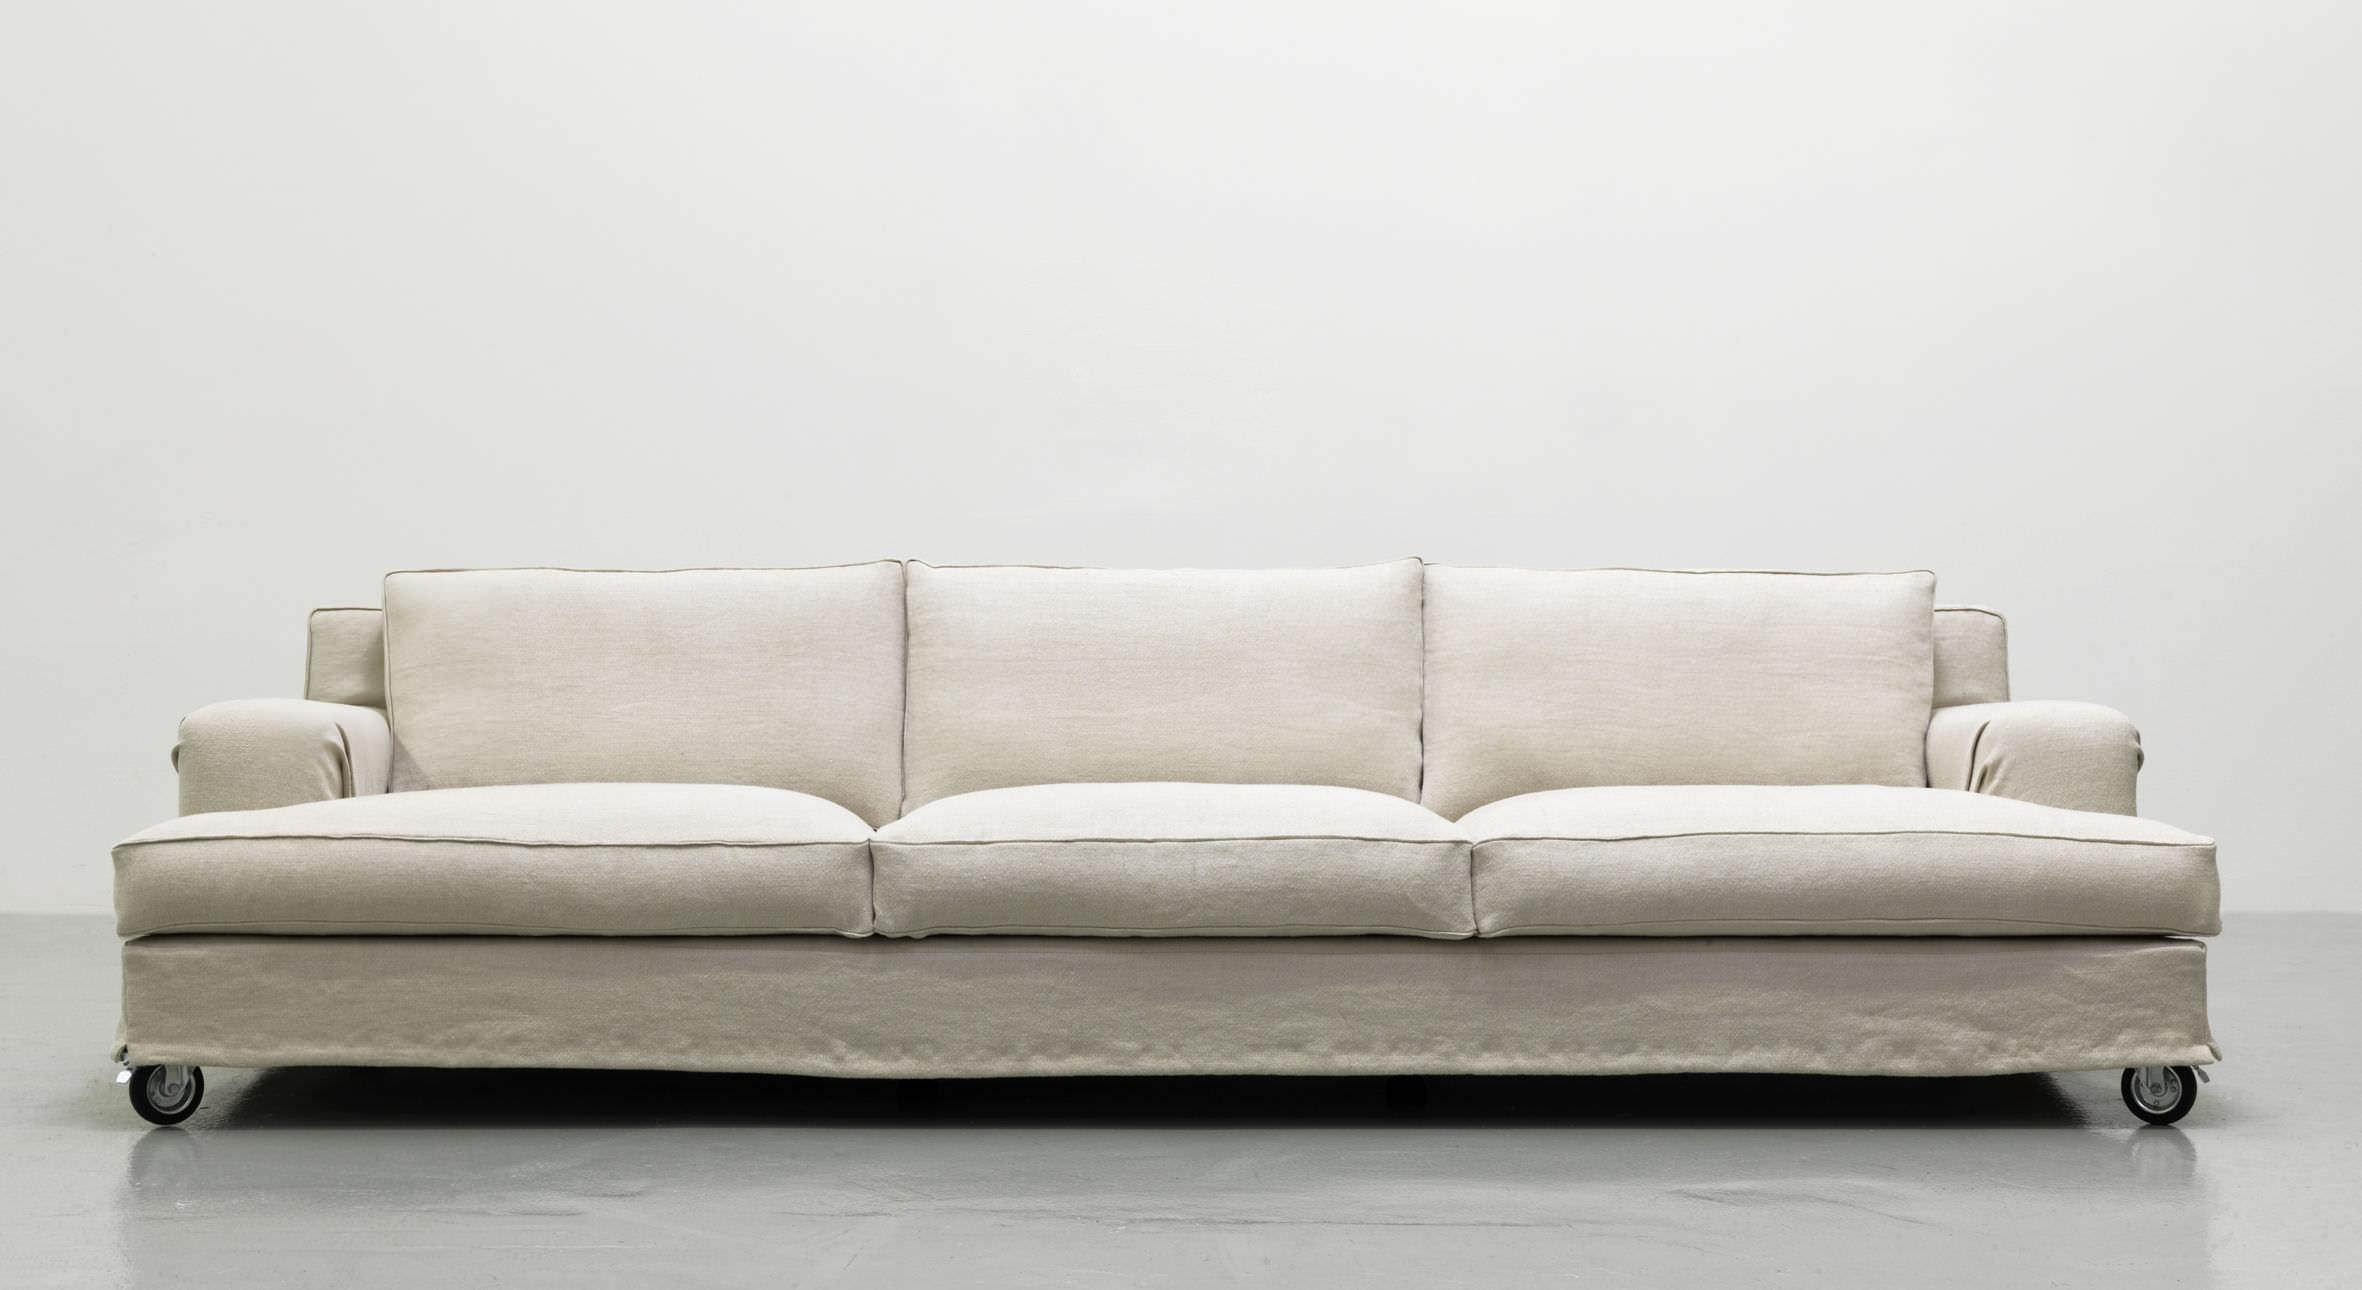 Contemporary Sofa / Fabric / 3 Seater / On Casters – Aberdeen Intended For Casters Sofas (View 8 of 20)